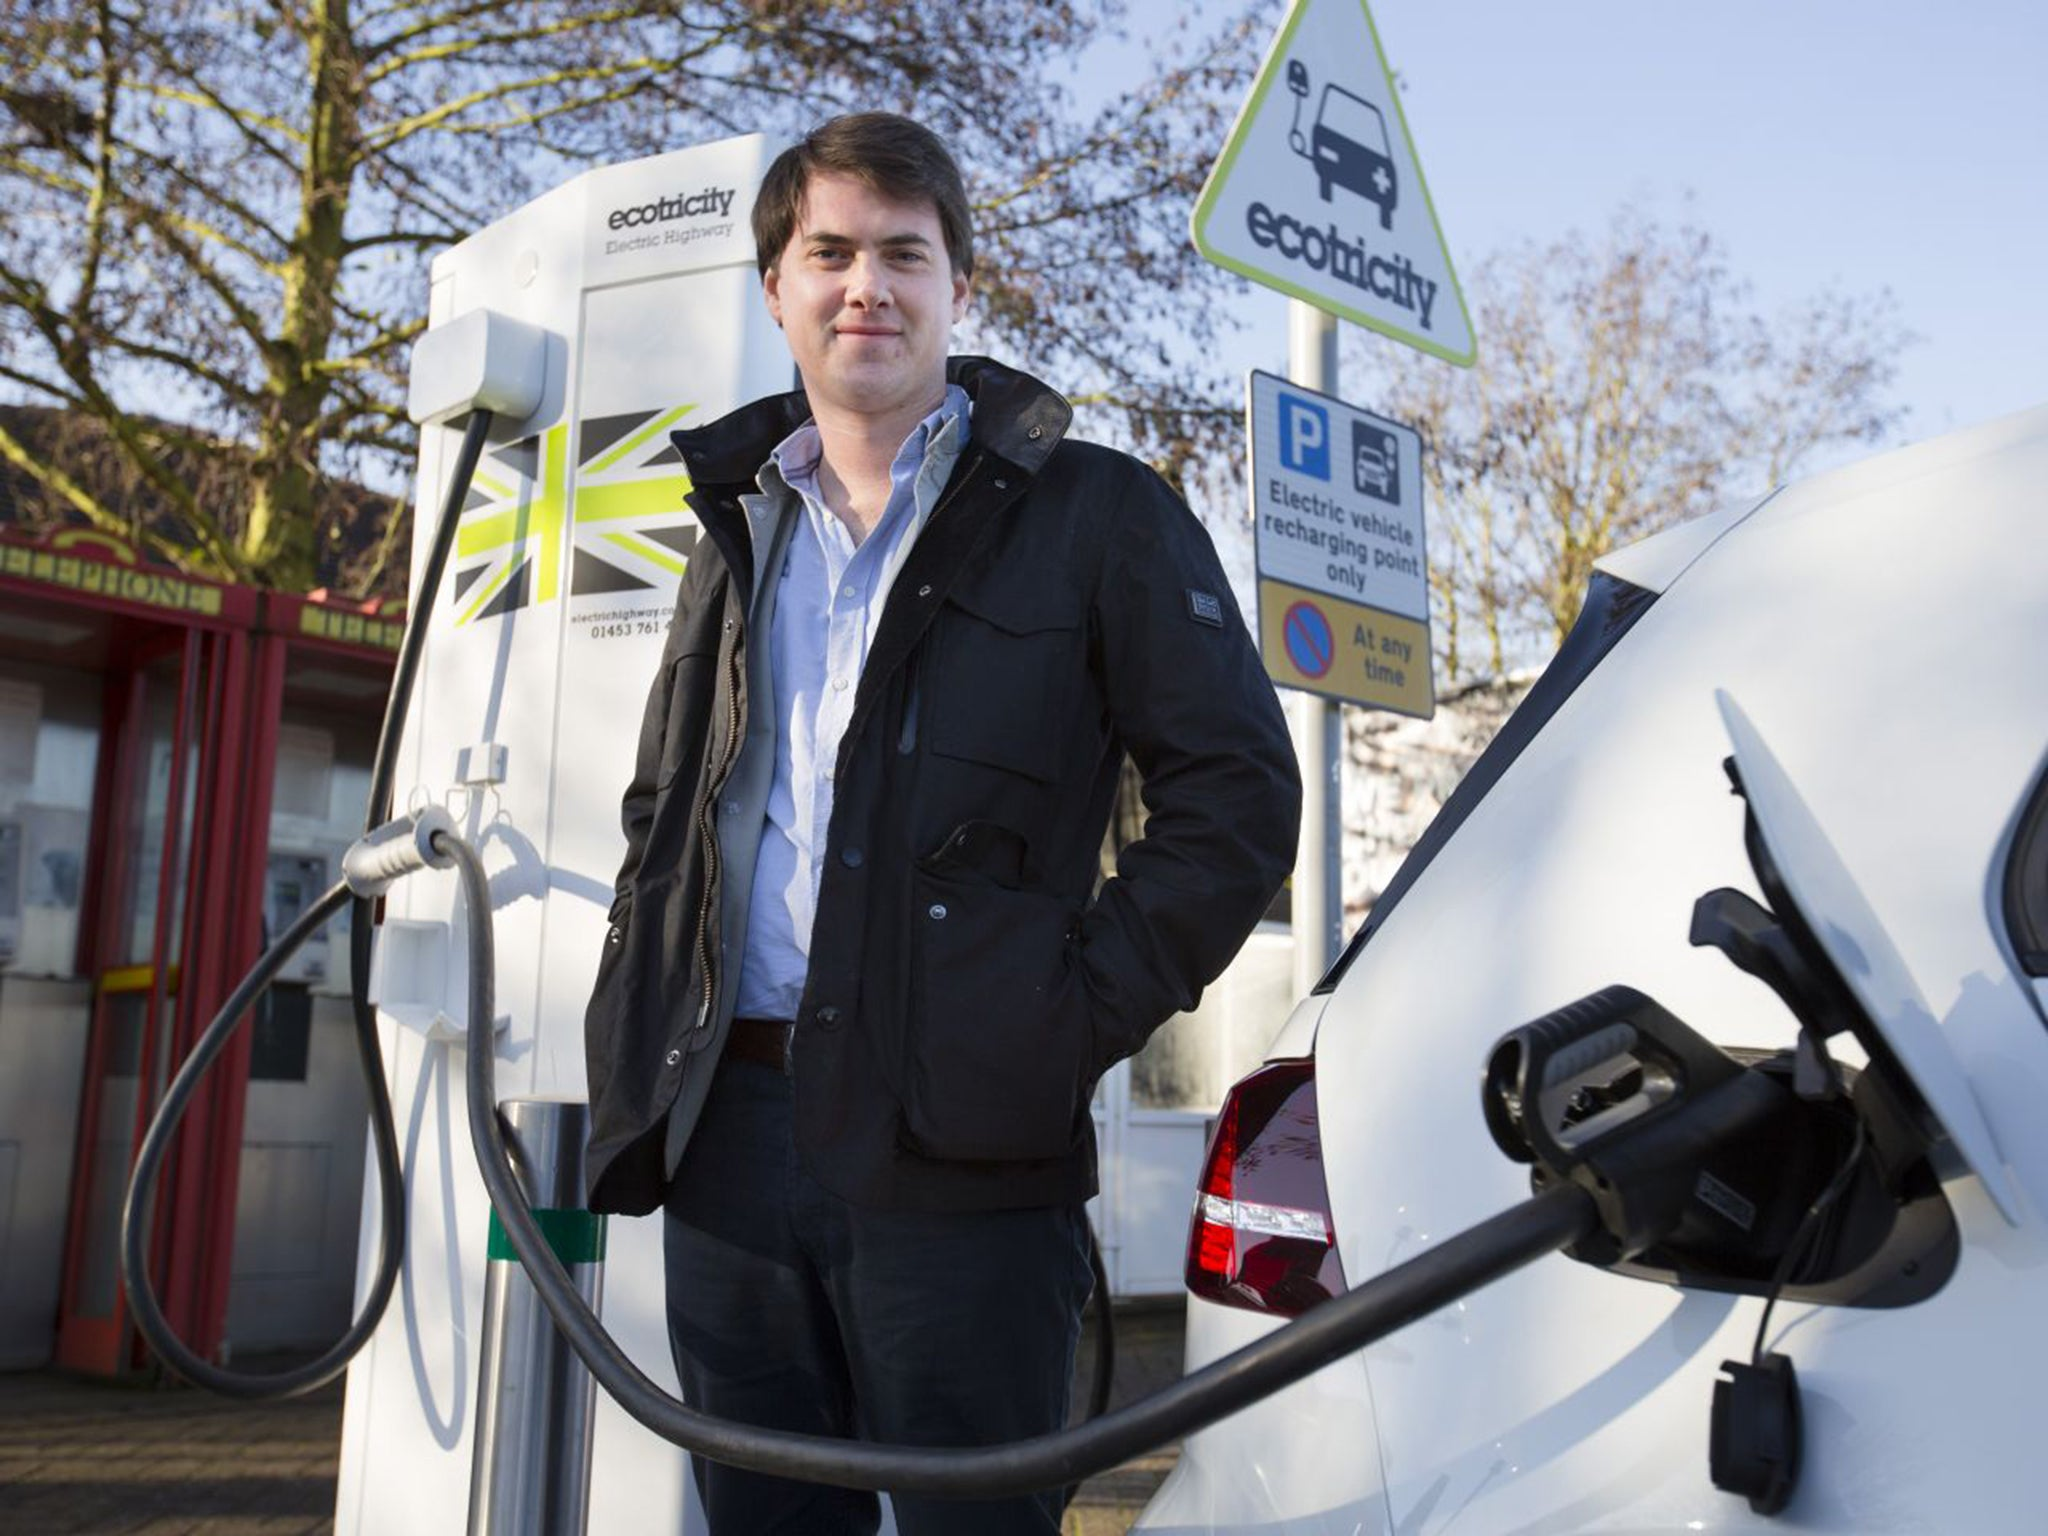 Are e-cars the future of motoring? Find out on a long, but not long enough, drive up the Electric Highway